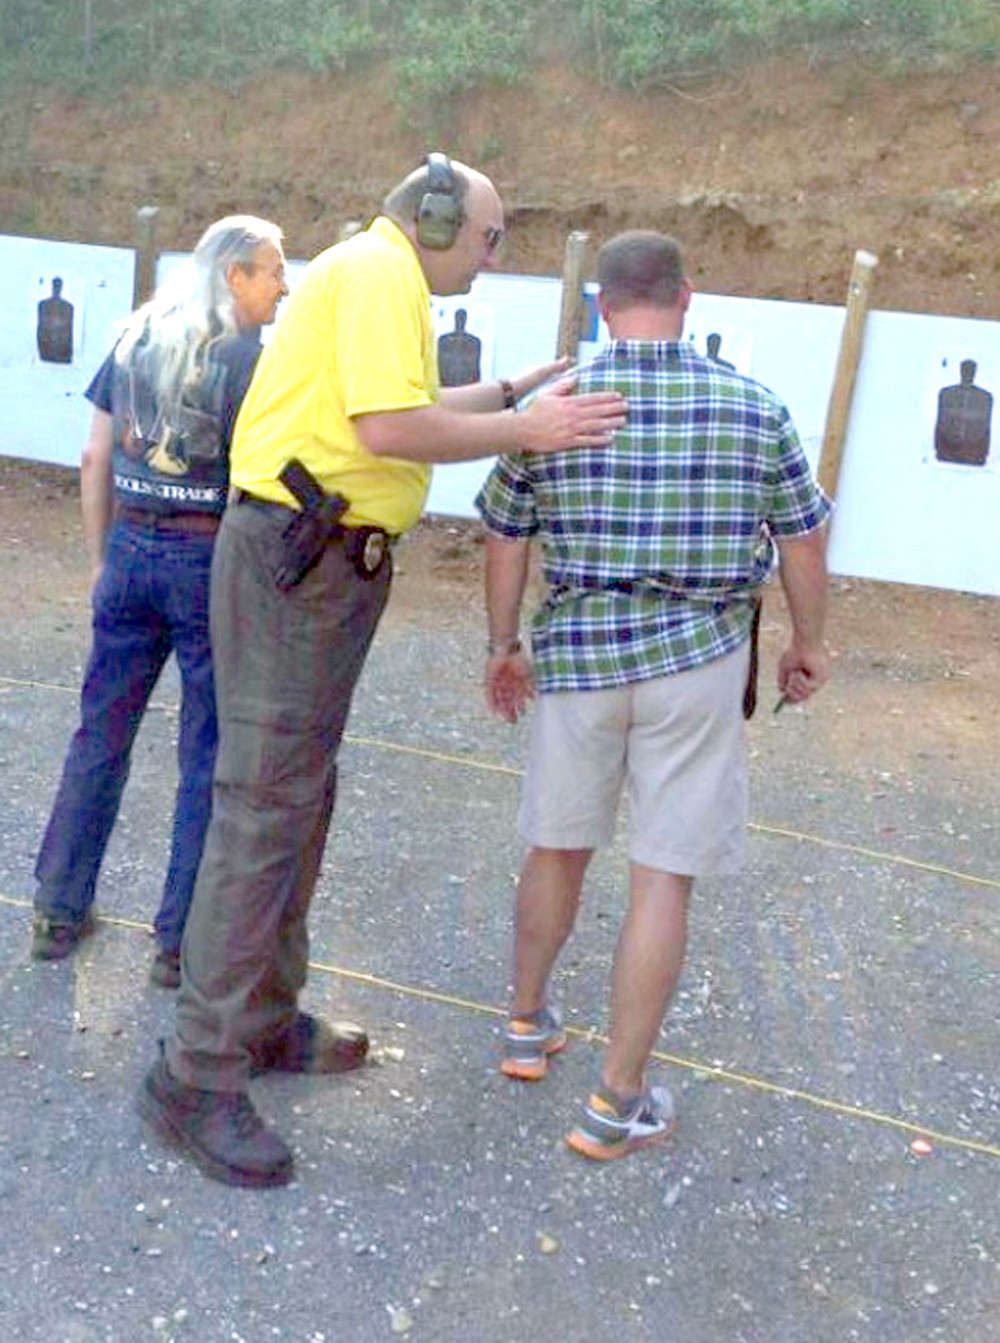 SHERIFF ERIC WATSON, center, assists during a firing range class. The sheriff has announced the next set of church security training opportunities next year will include firearms training.